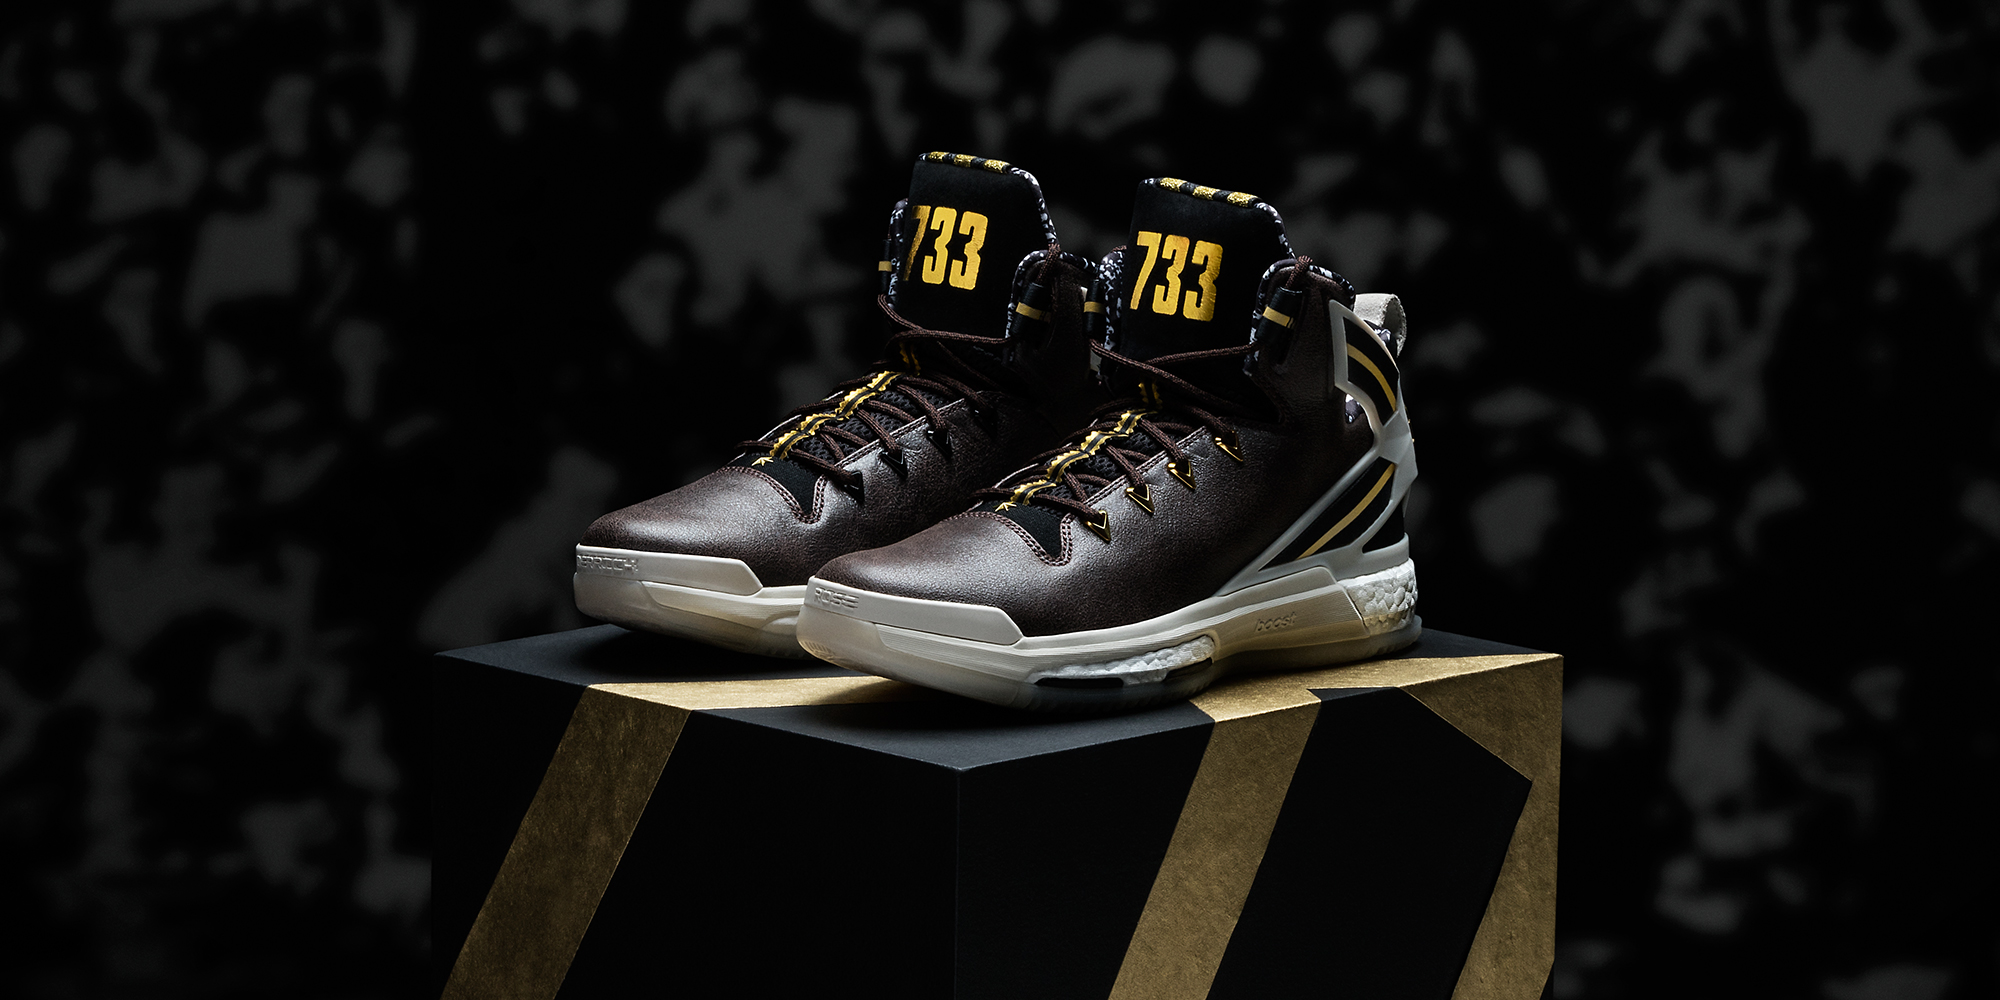 b2b737f28ef adidas D Rose 6  Black History Month  is Available Now - WearTesters